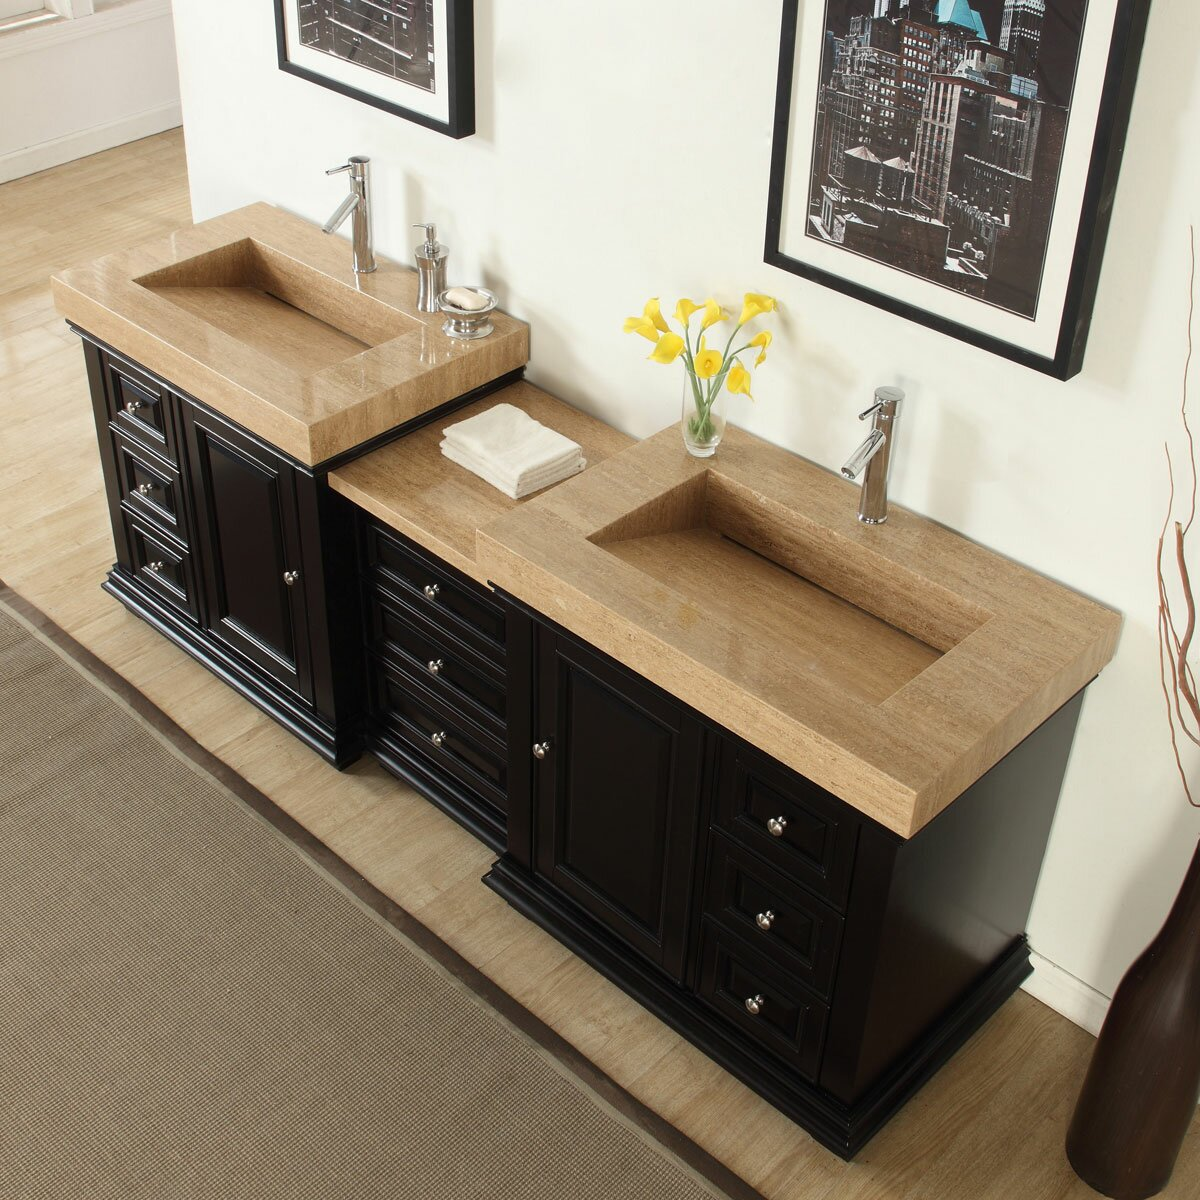 Silkroad exclusive 90 double sink modern bathroom vanity - Contemporary double sink bathroom vanity ...